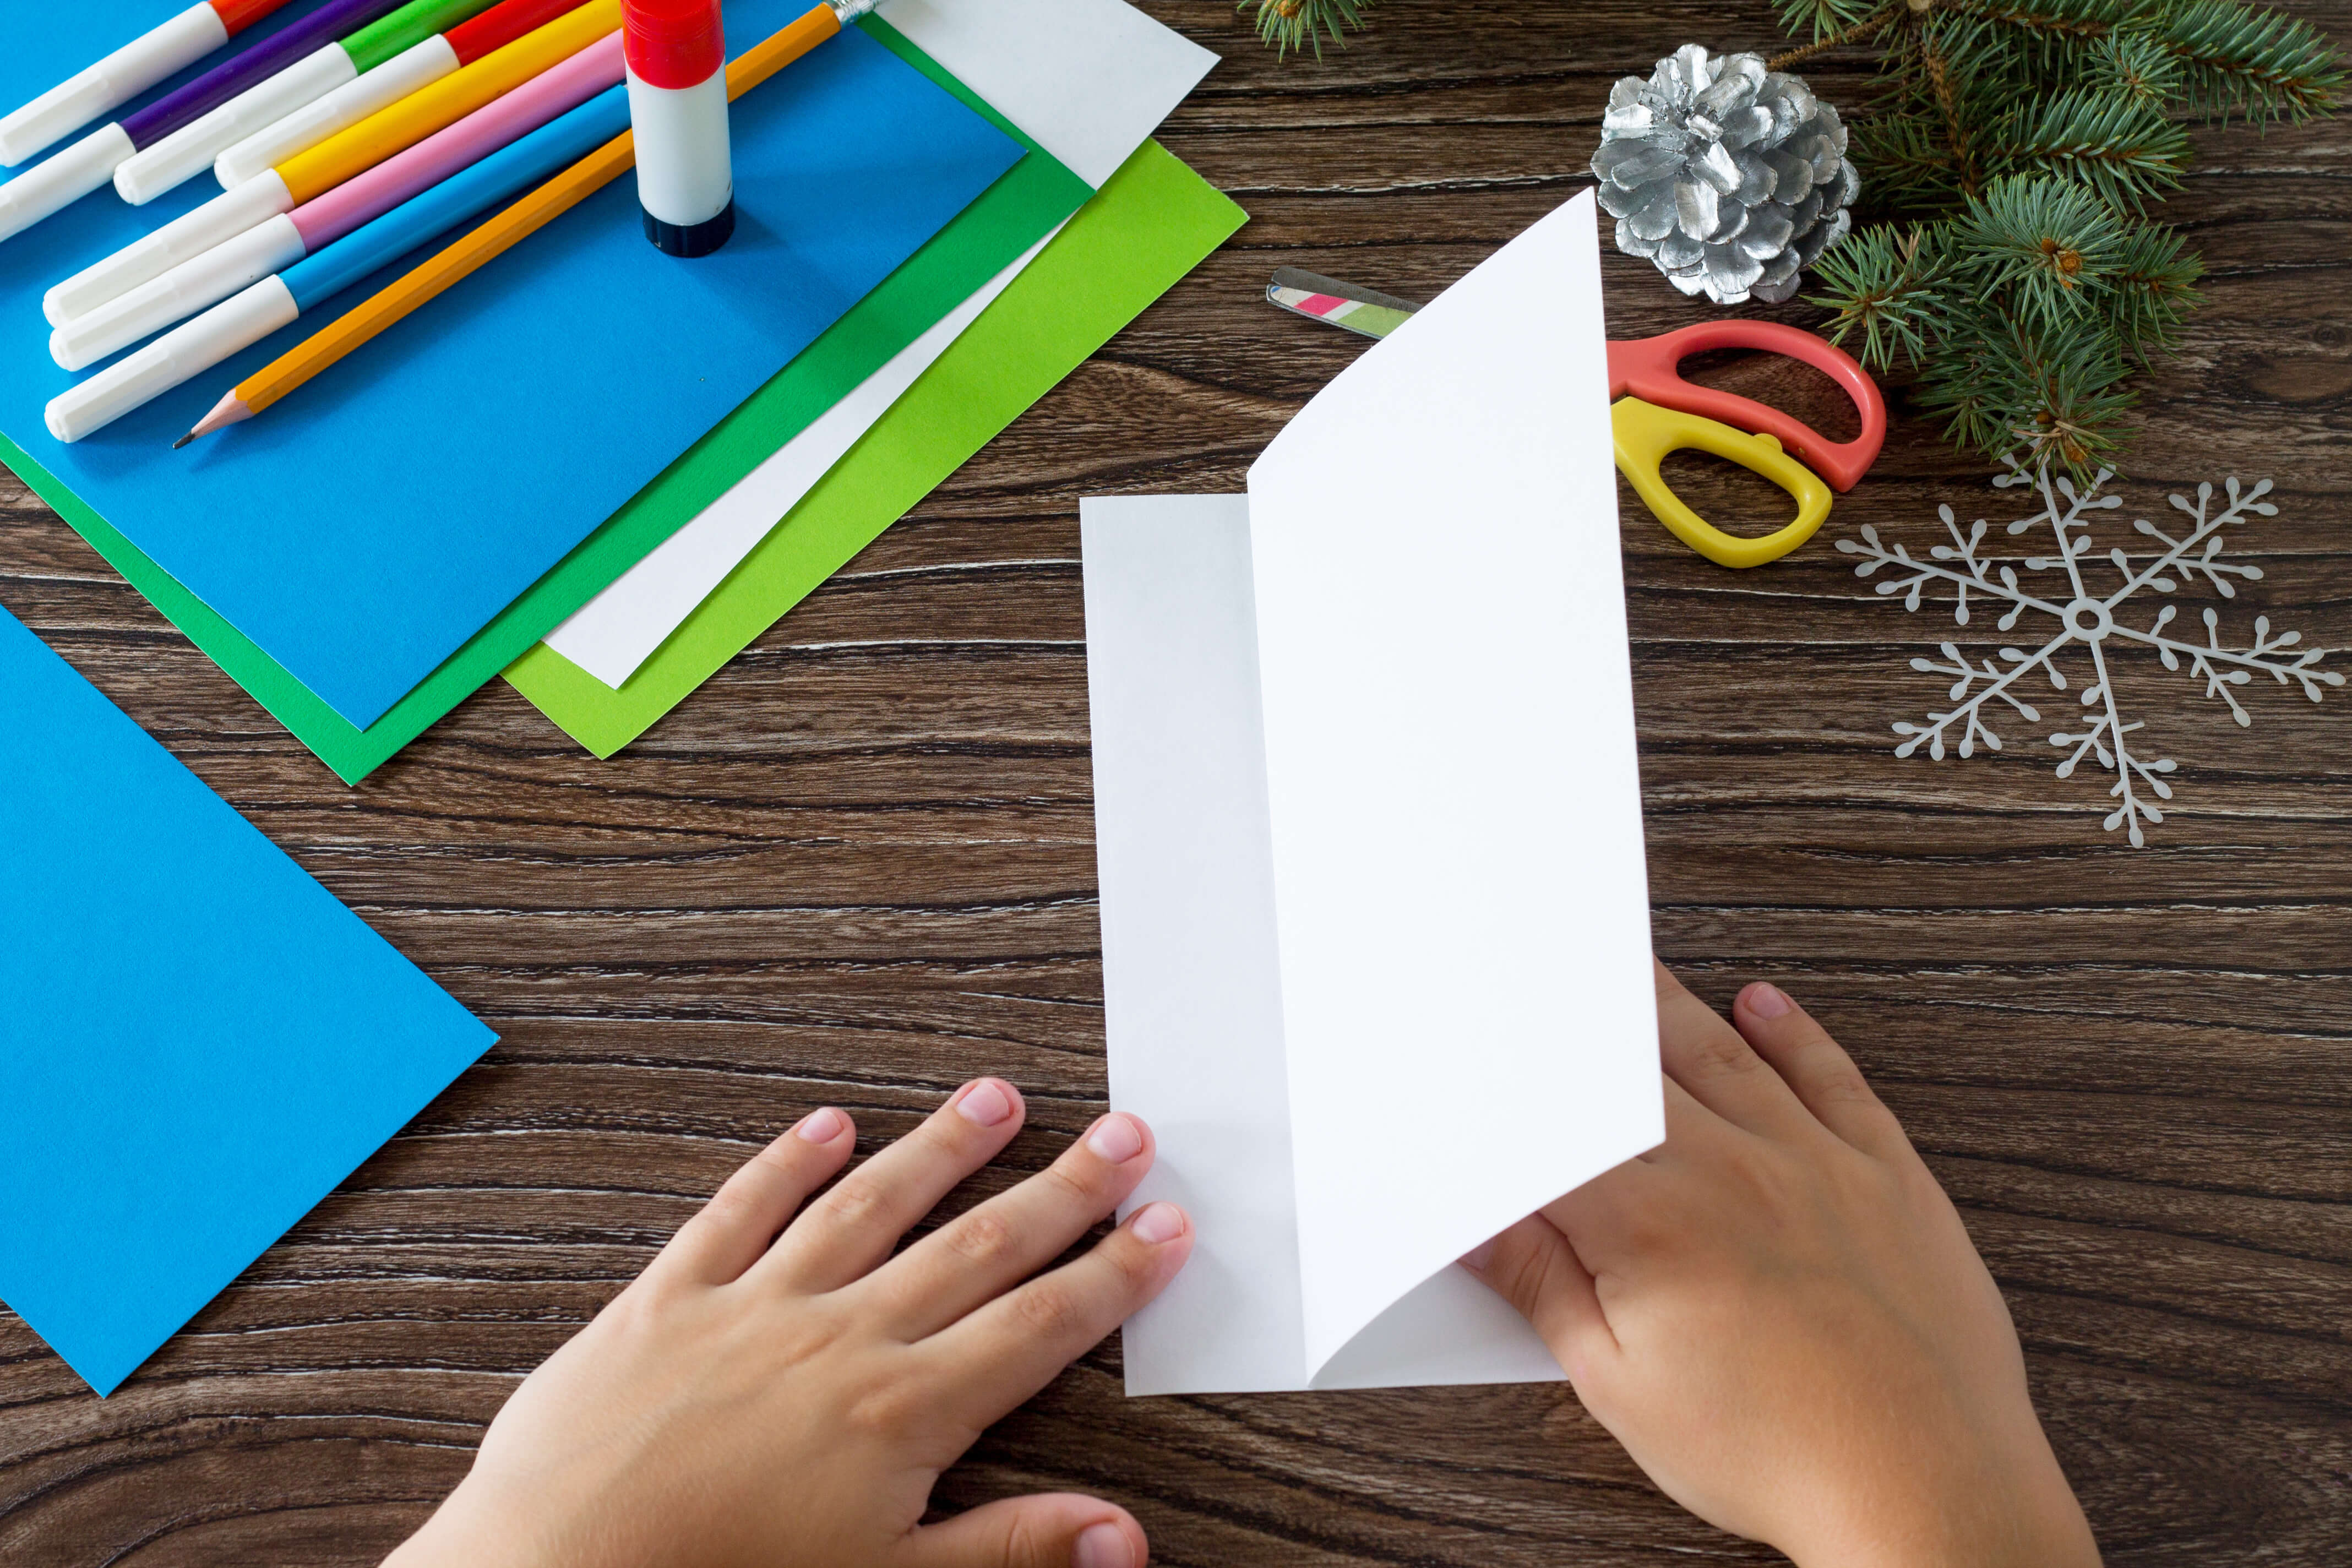 Do-It-Yourself Crafts